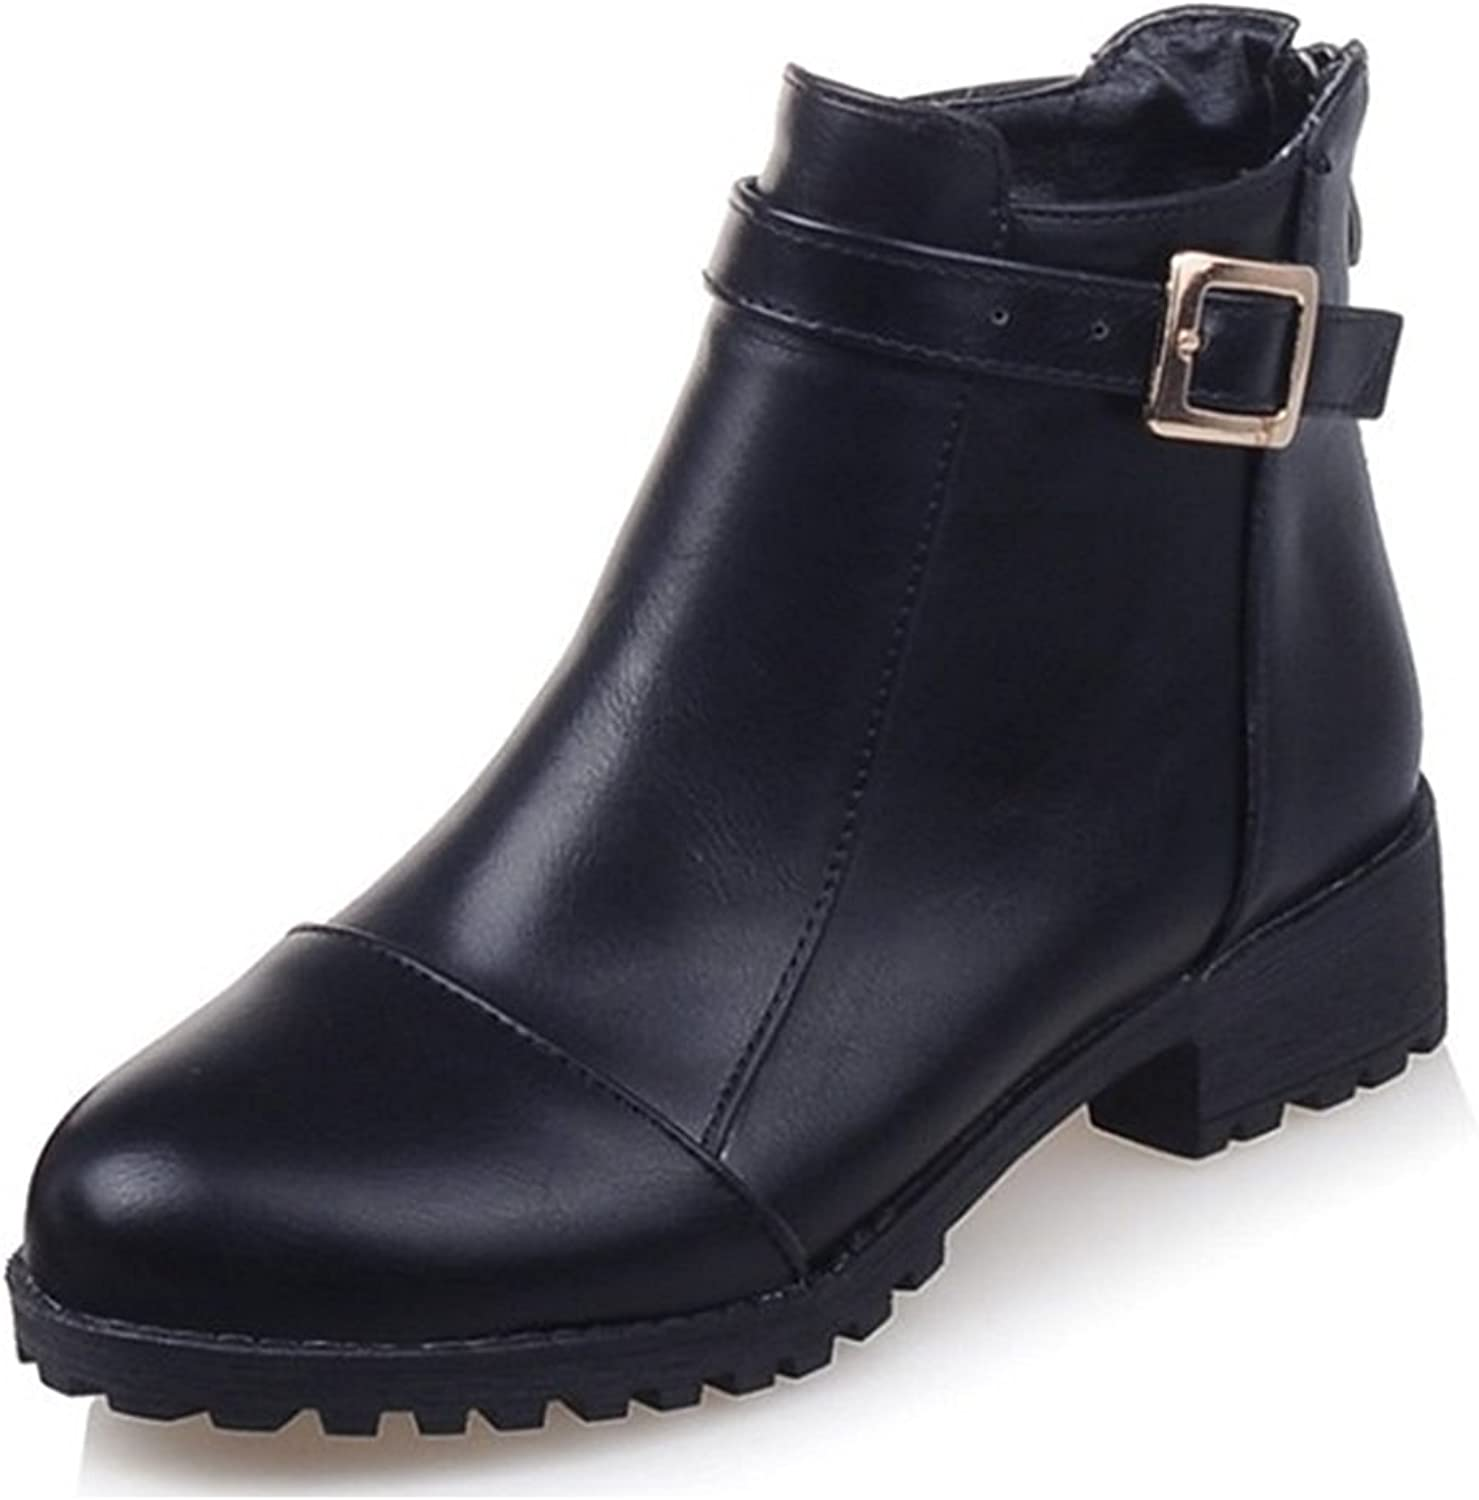 Sothingoodly Nice Women's Trendy Buckled Strap Round Toe Back Zipper Block Low Heel Ankle Boots